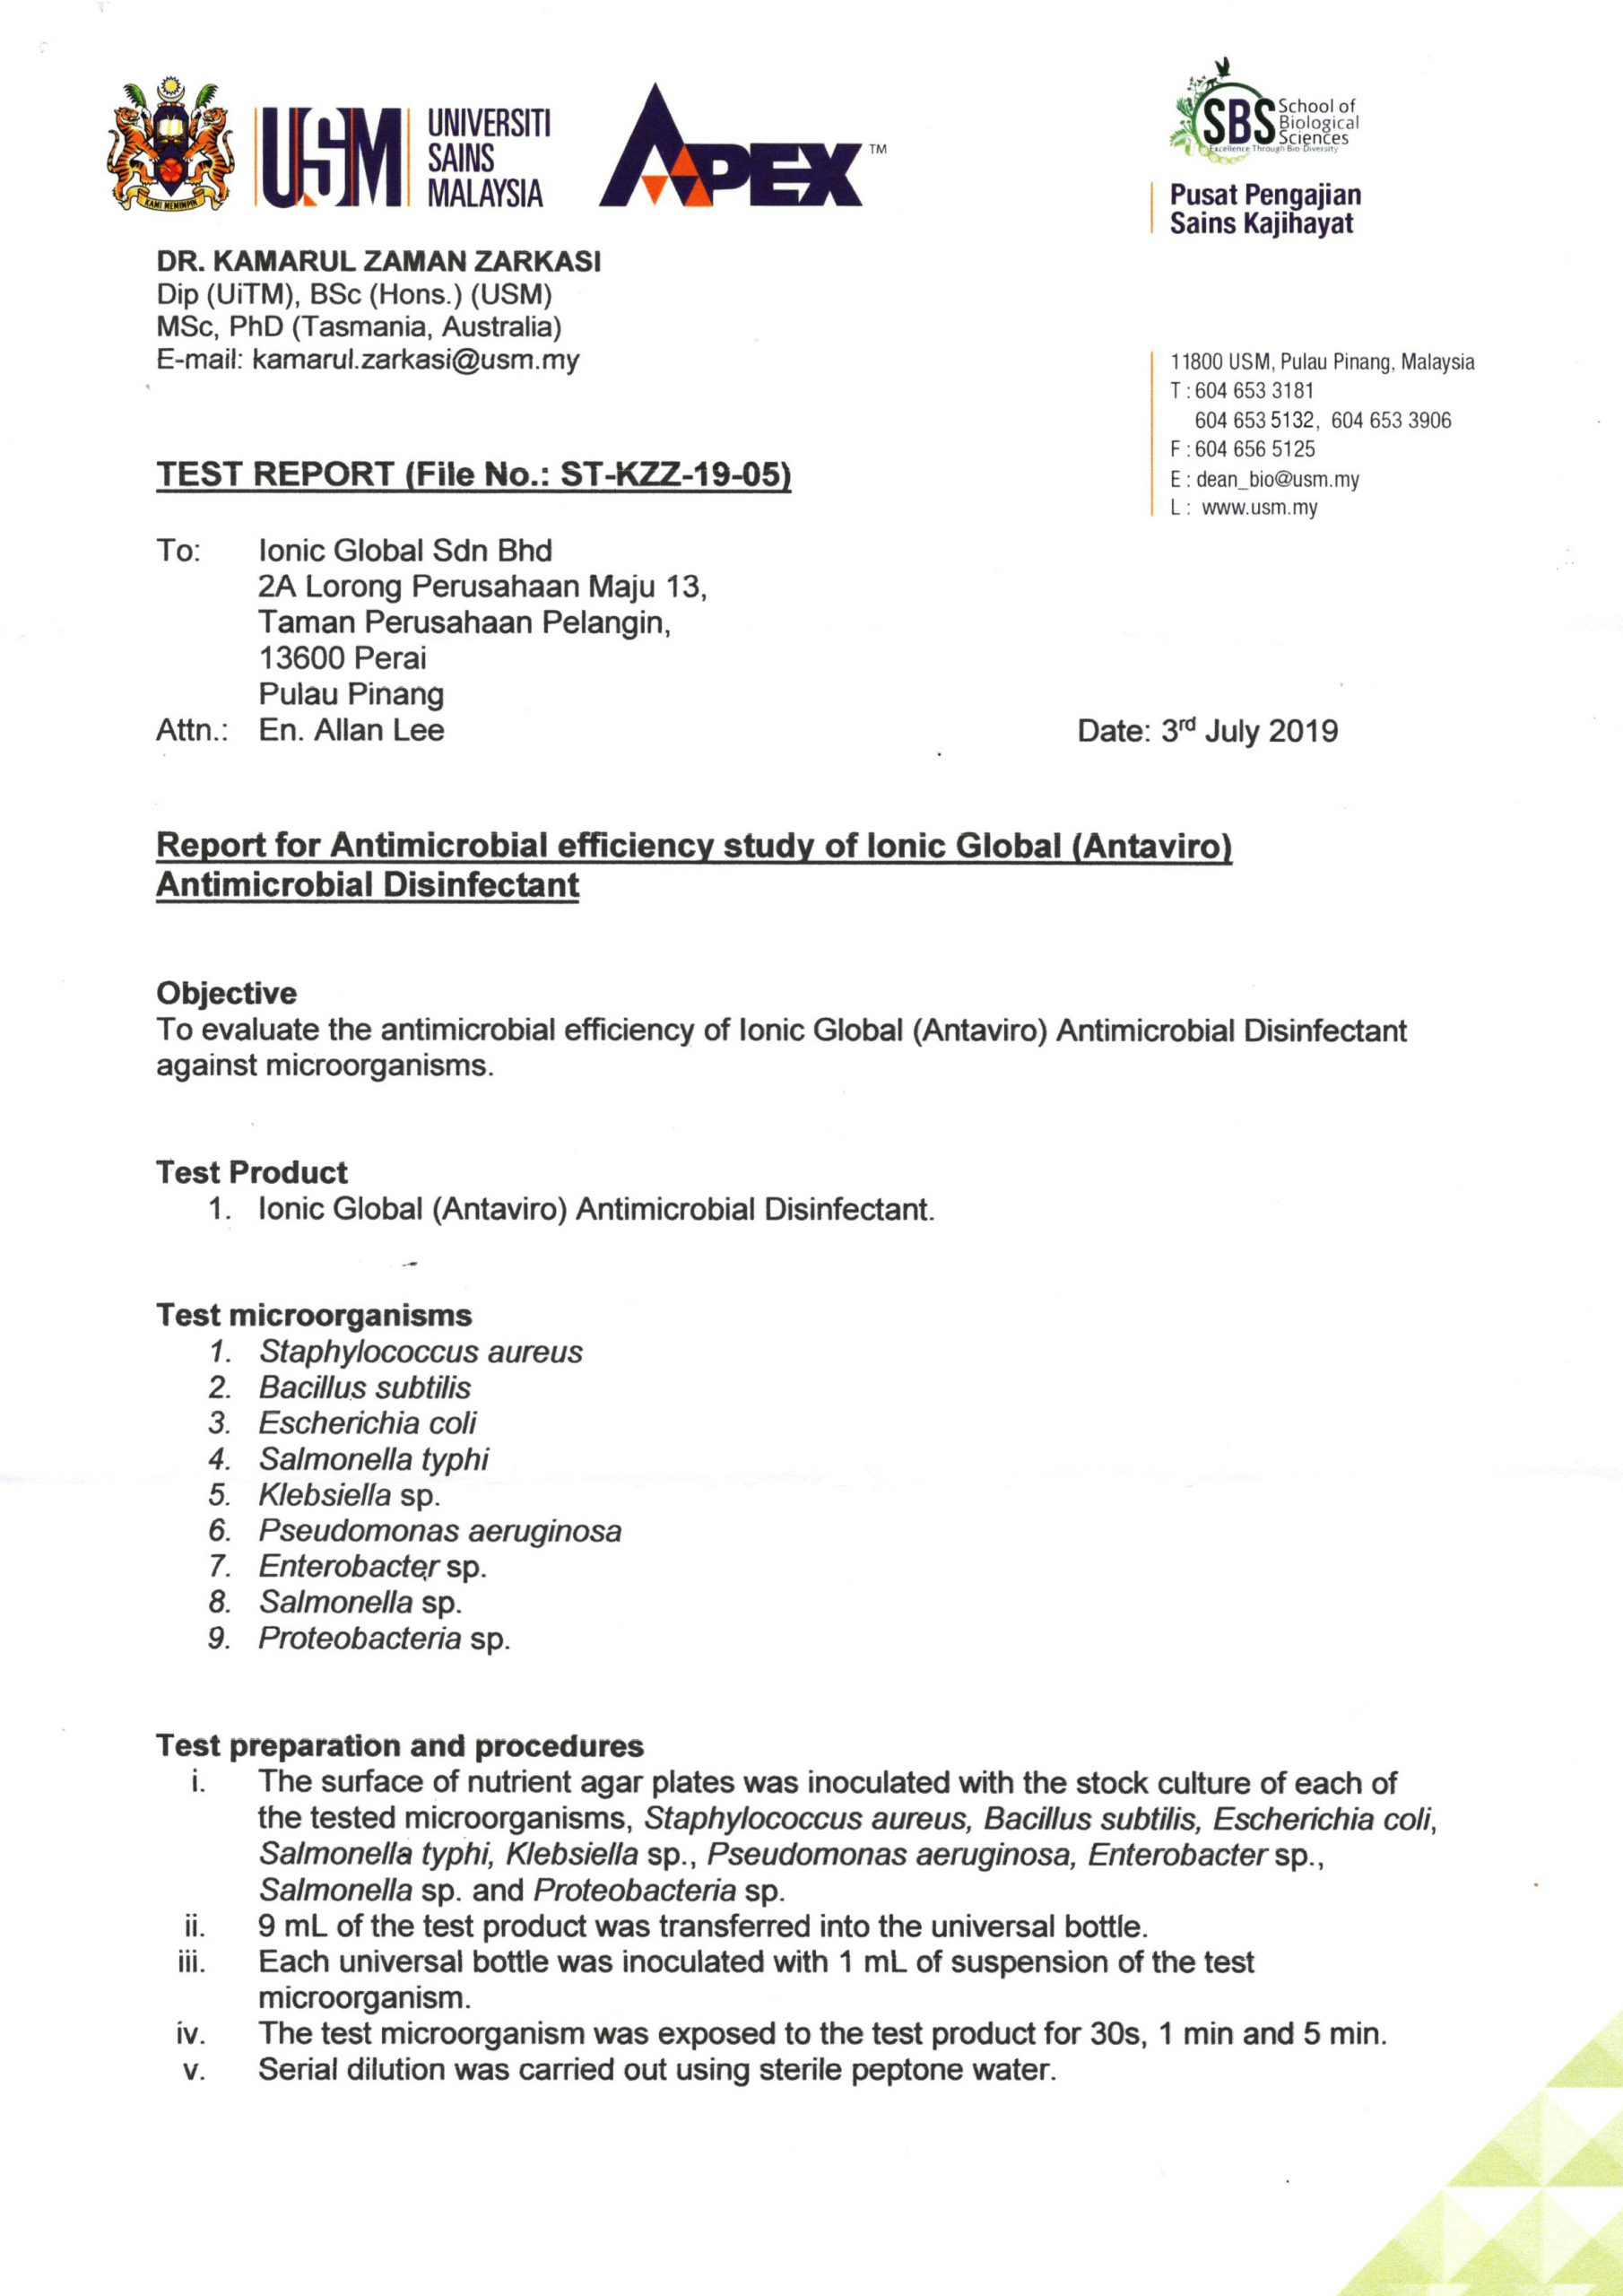 USM Test Report Antimicrobial